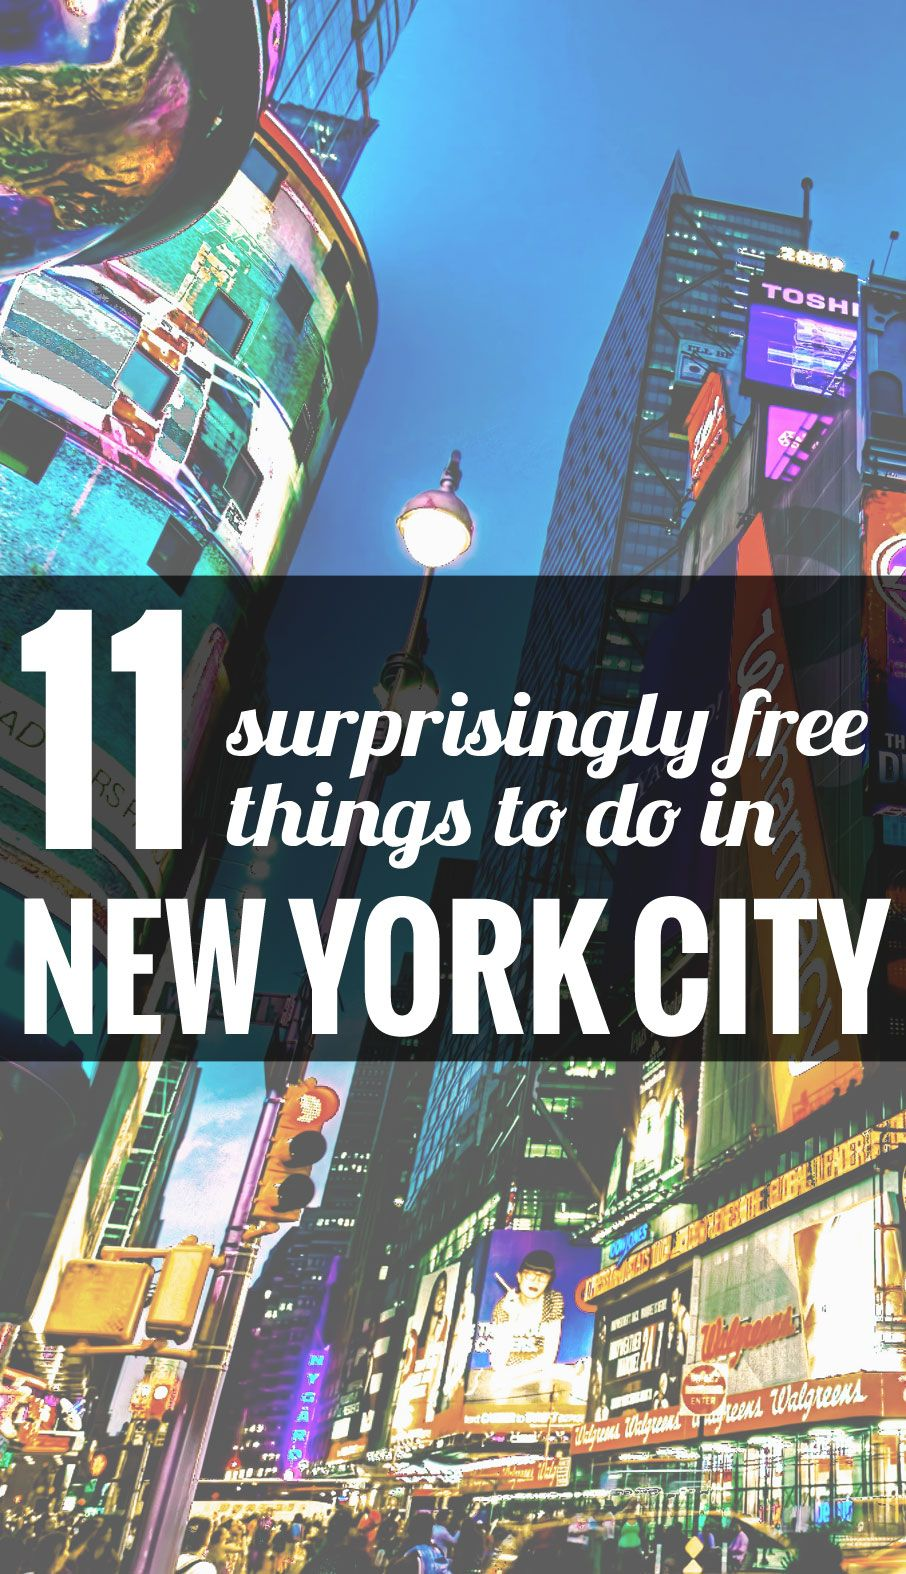 New york city home sweet home on pinterest 1026 pins for New york city thing to do